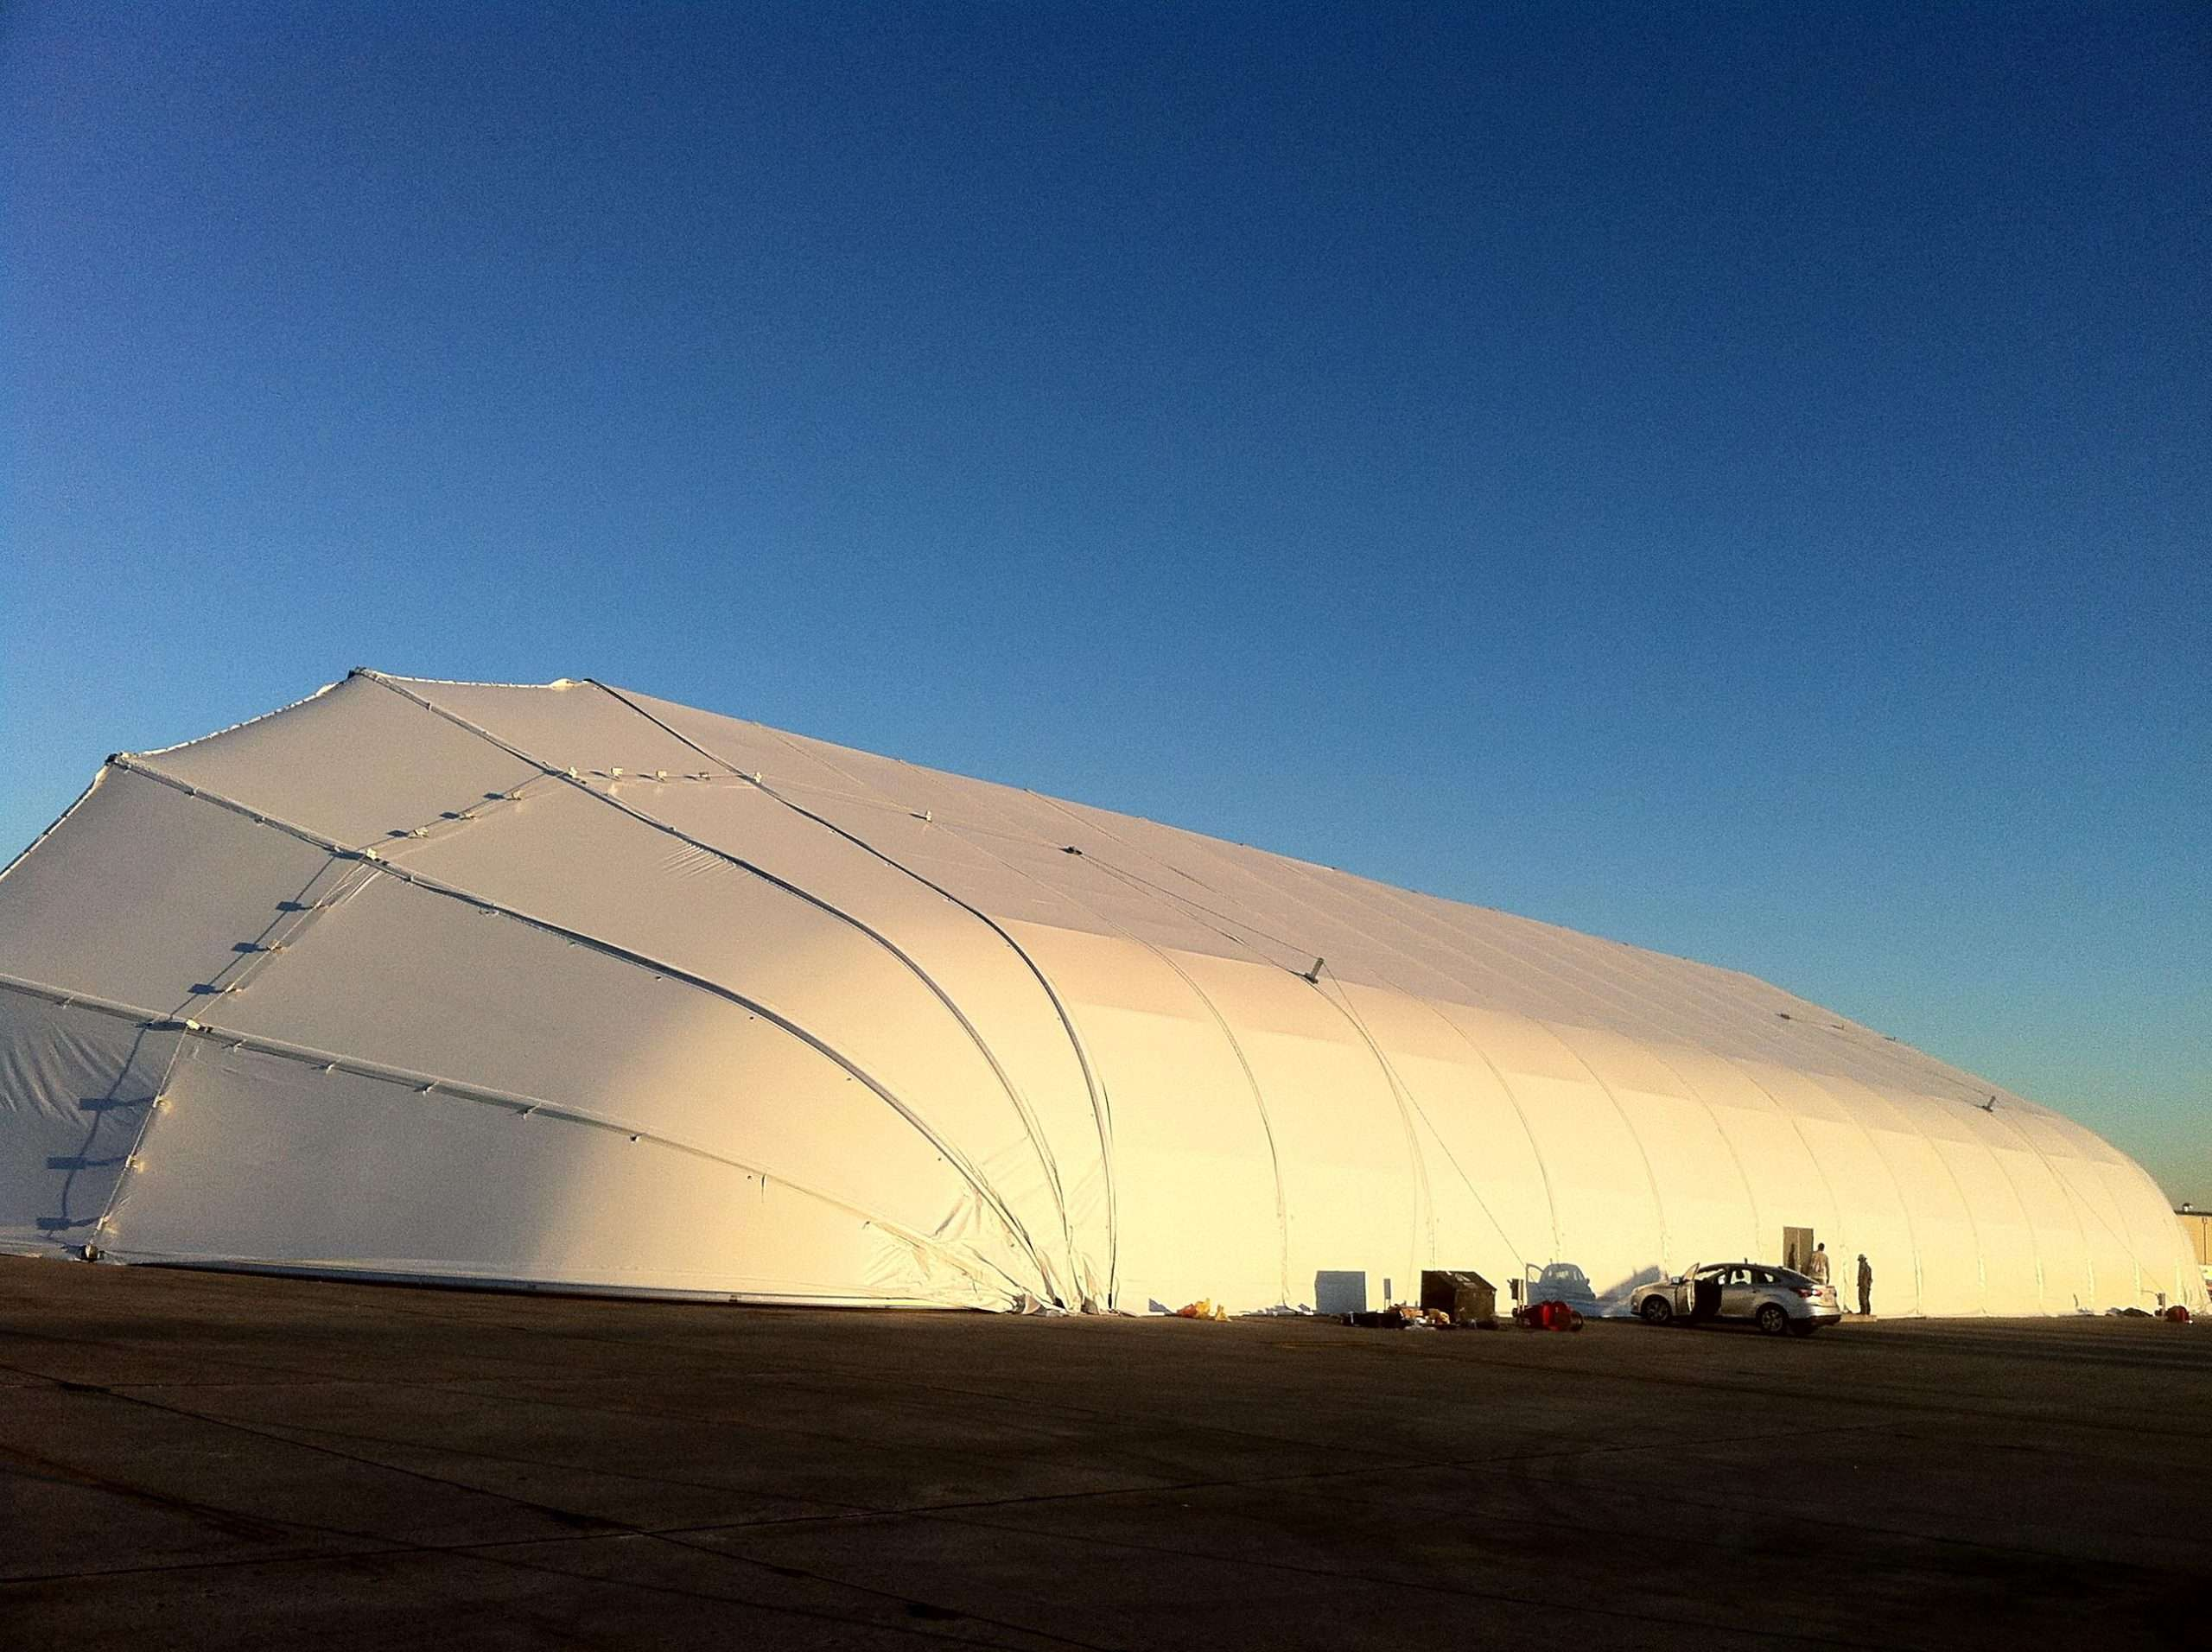 Tension Fabric Aircraft Hangars a Sustainable Aviation Solution